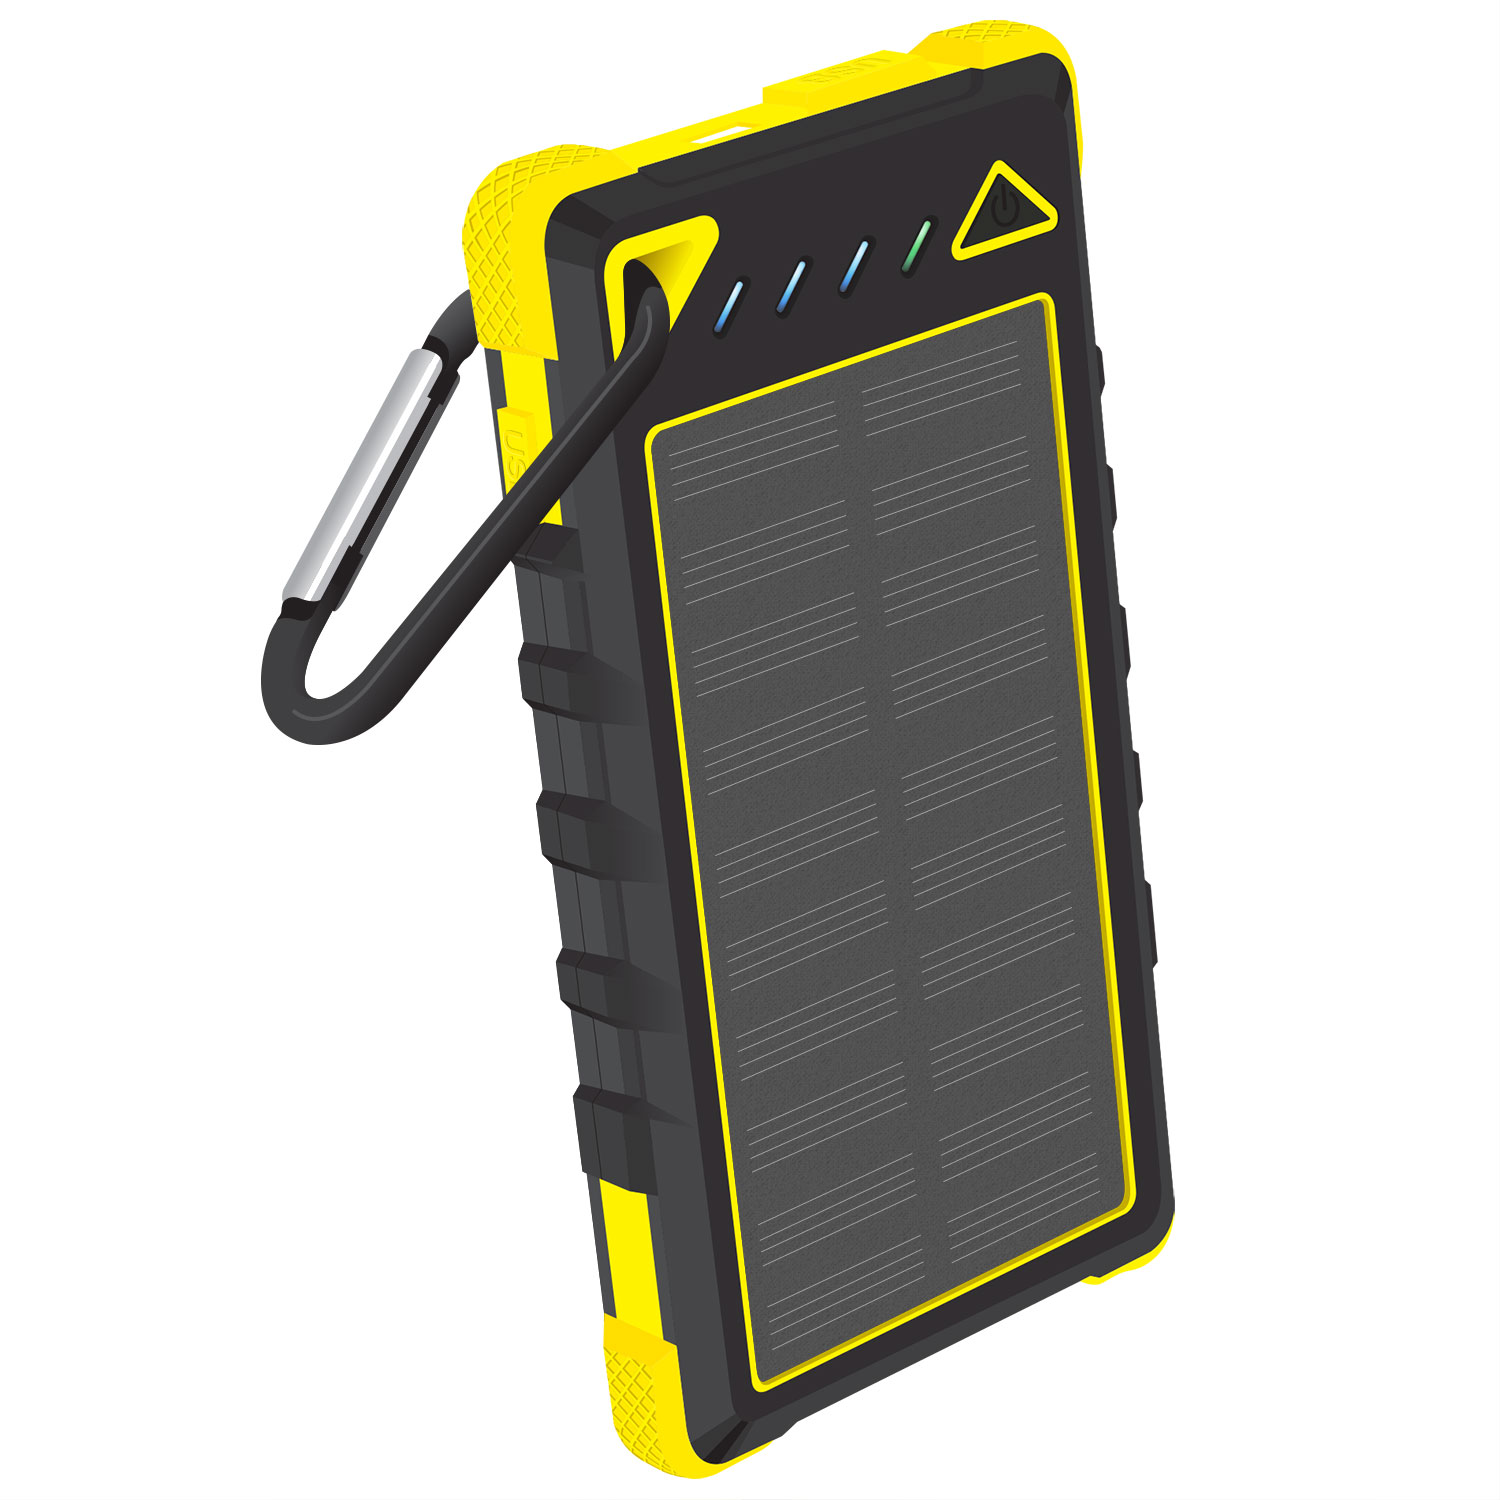 Huawei Honor 6 Plus Solar Powered Portable PowerBank Yellow